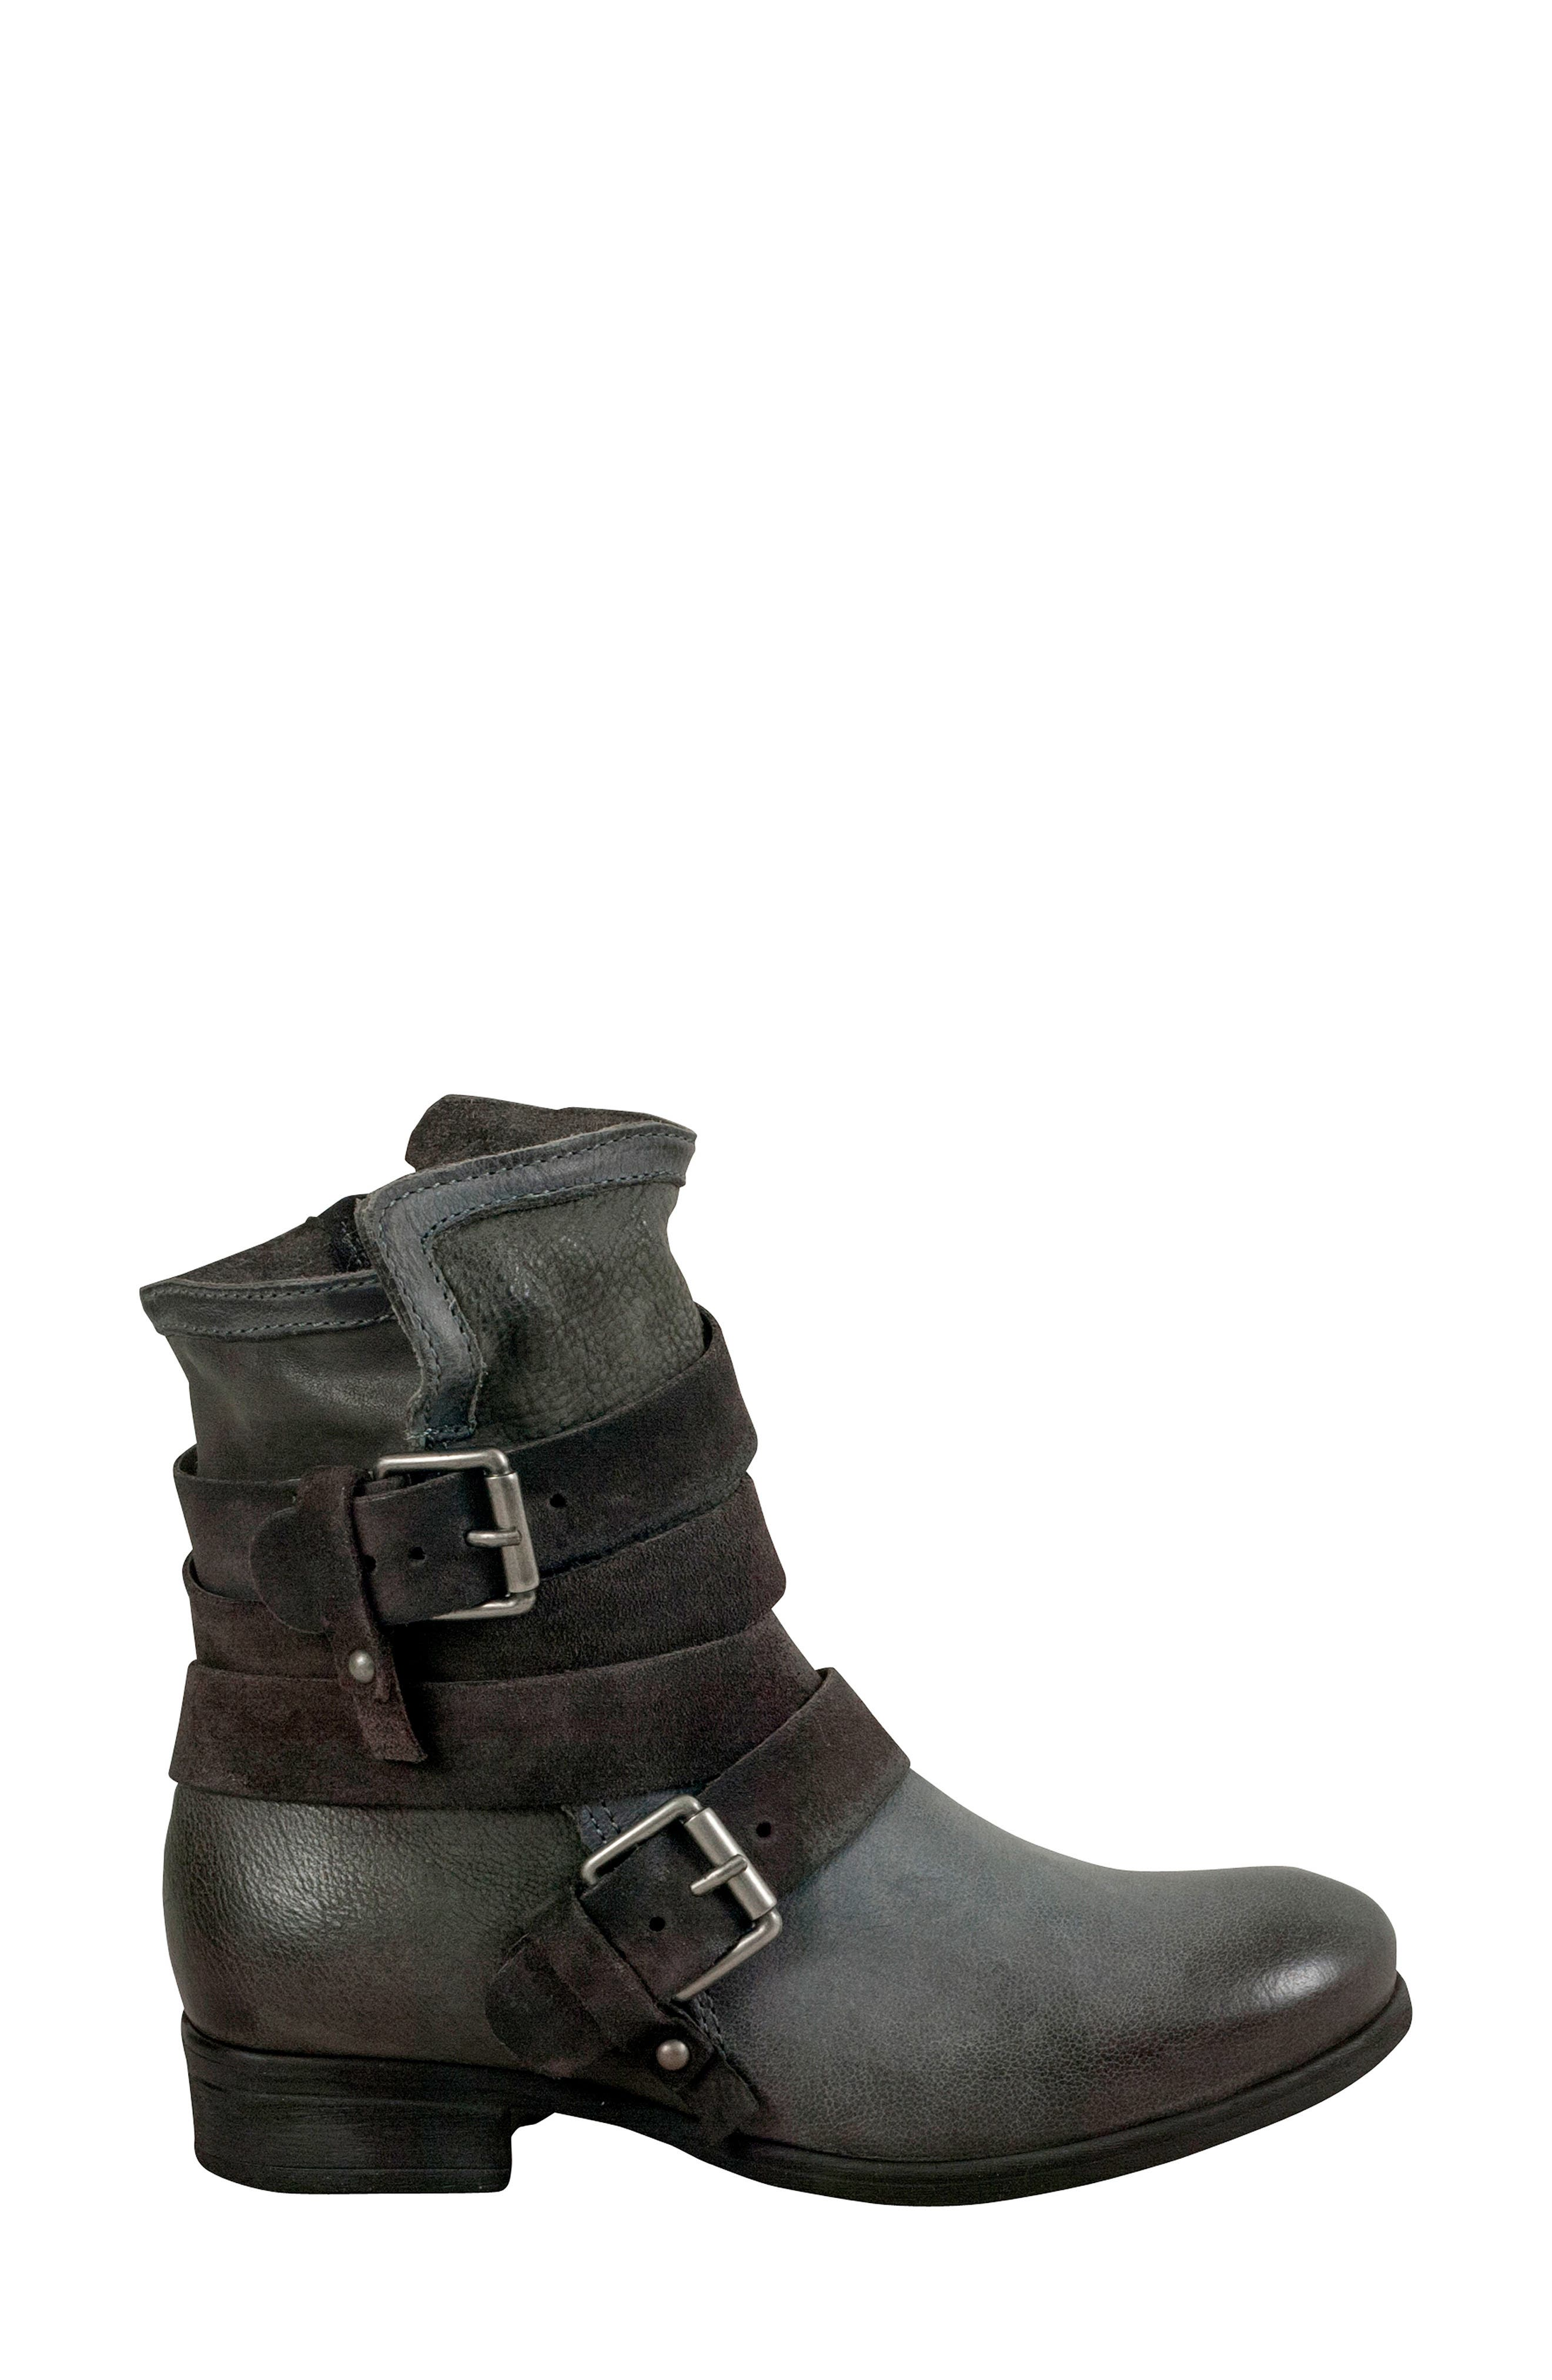 Savvy Buckle Bootie,                             Alternate thumbnail 3, color,                             GRANITE LEATHER